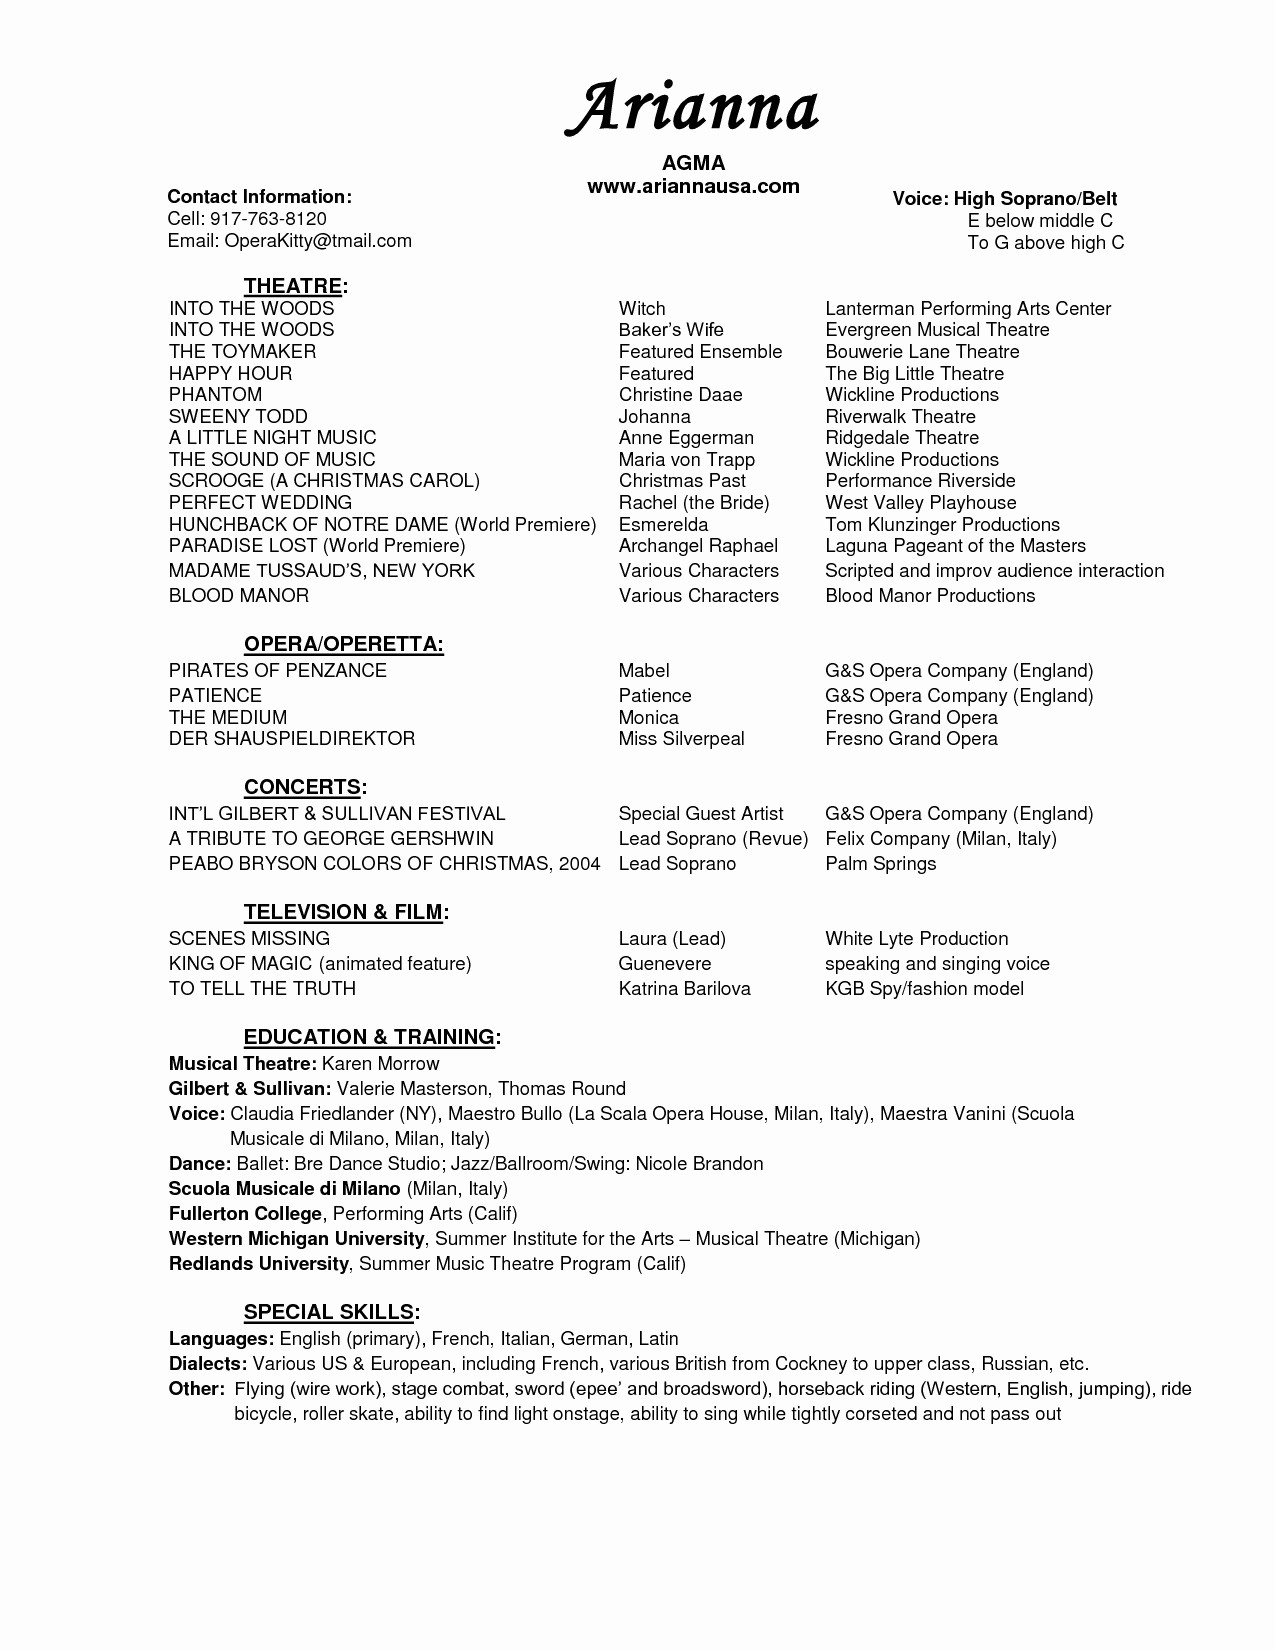 Unique Resume Templates - Musicians Resume Template Save Musical theatre Resume Template